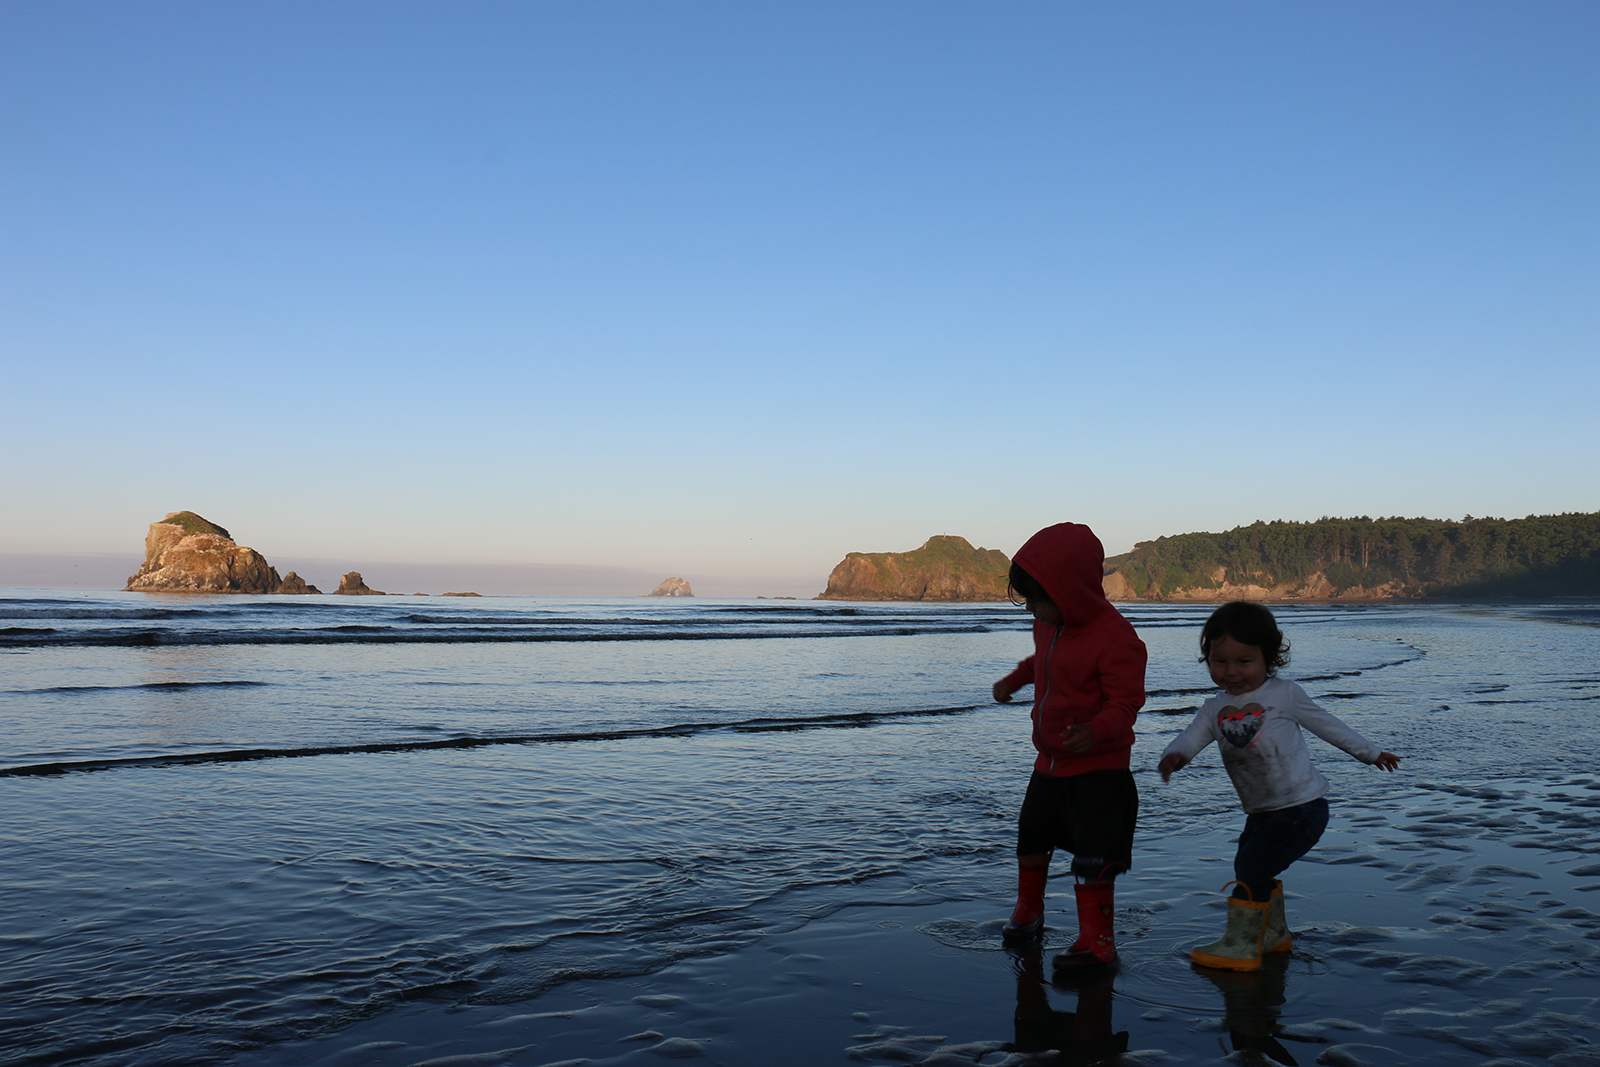 Children play on the beach below Point Grenville on the Quinault reservation.